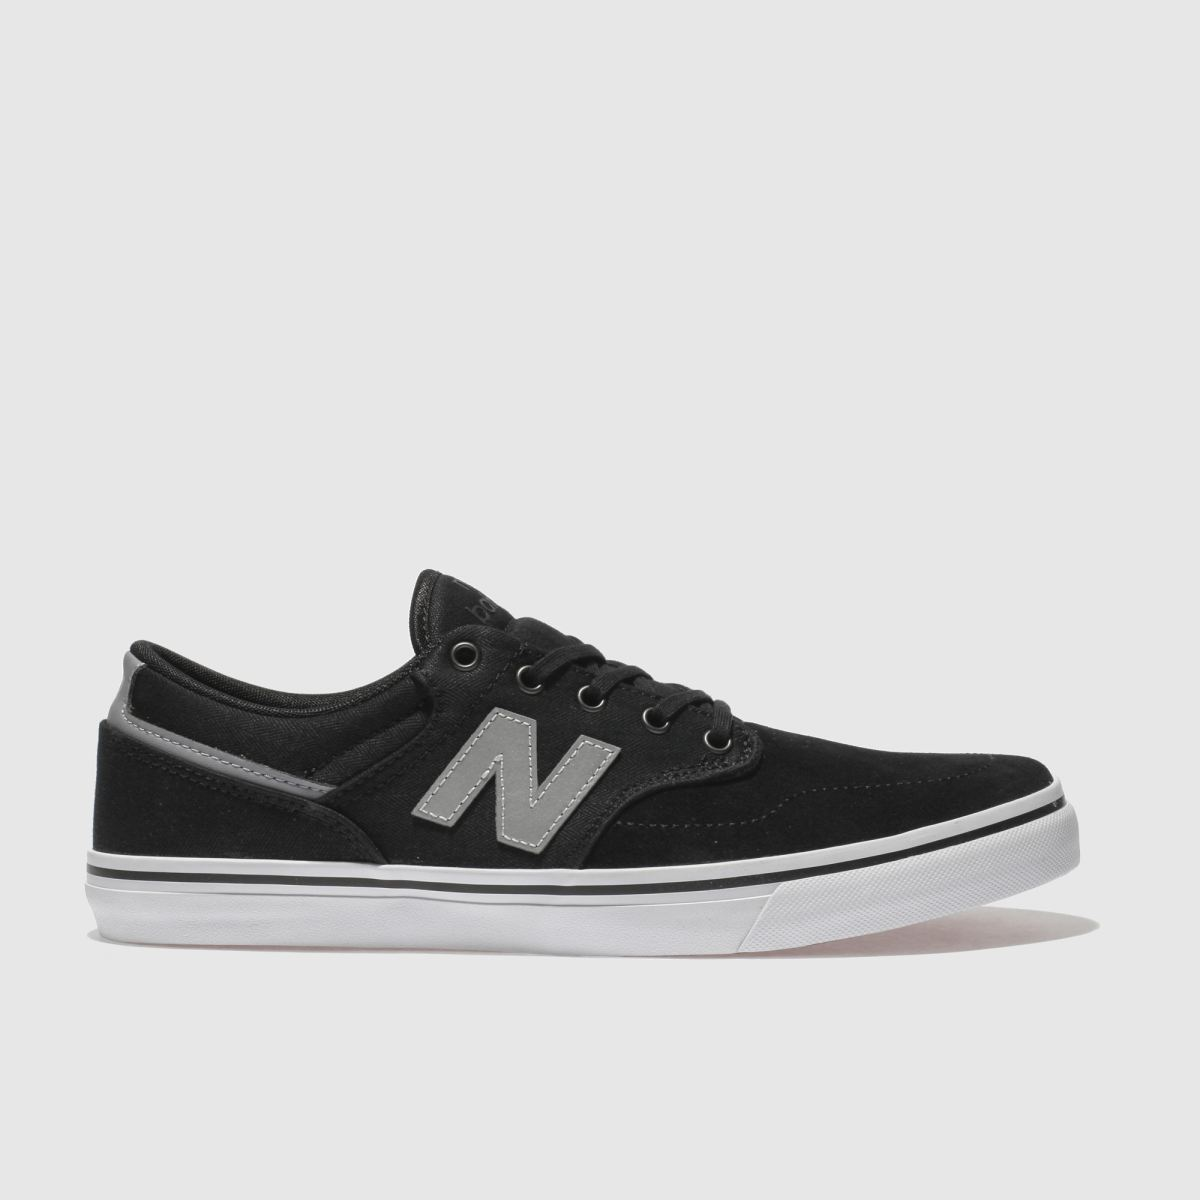 New Balance Black & White All Coasts 331 Trainers